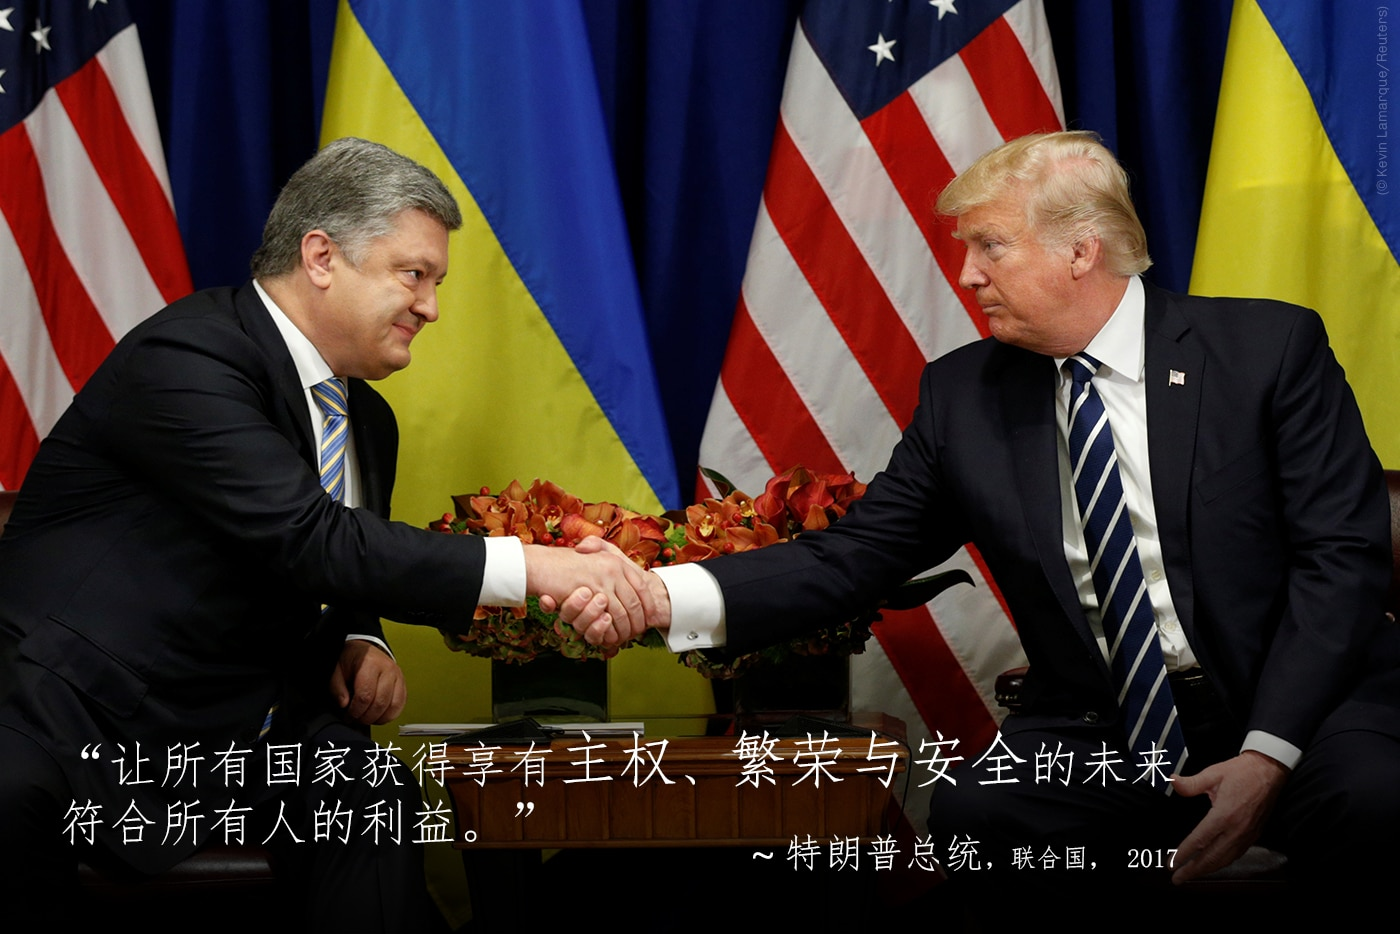 Petro Poroshenko shaking hands with Donald Trump, with quote overlaid (© Kevin Lamarque/Reuters)